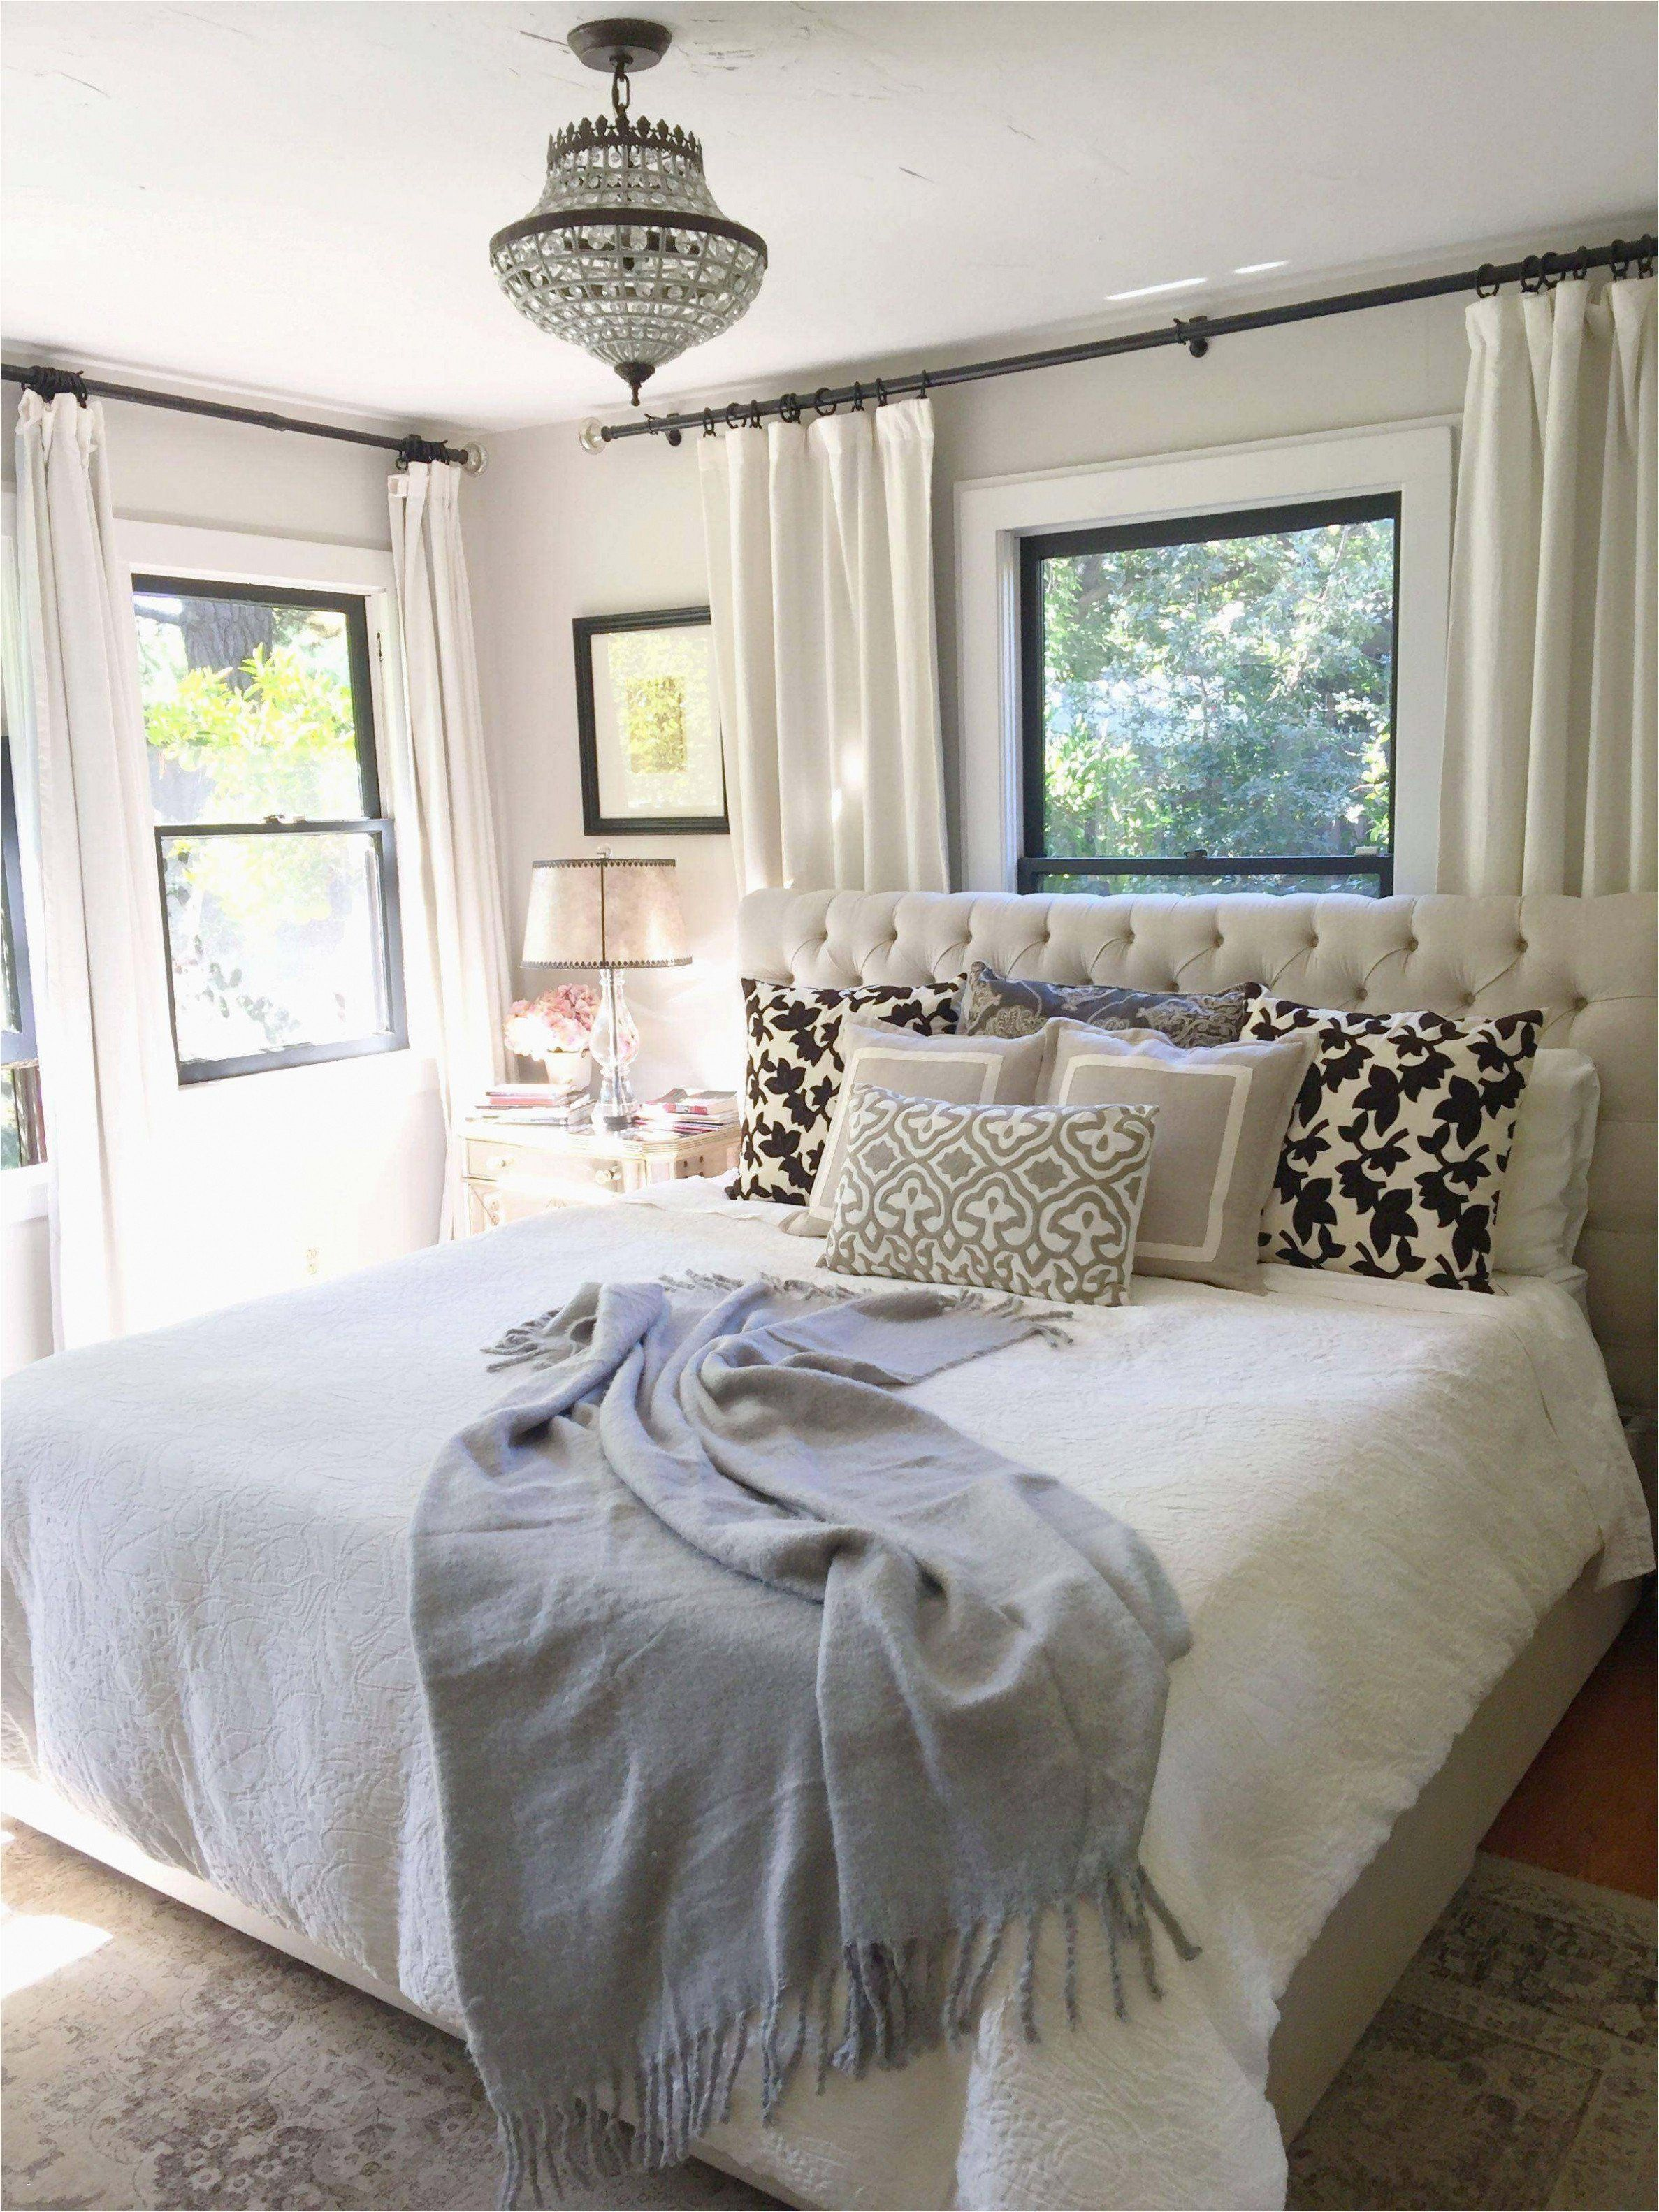 Home Decoration Ideas Pinterest Best Of Contemporary Bedroom Decorating Ideas Jackolan Small Master Bedroom Layout Small Master Bedroom Master Bedroom Layout